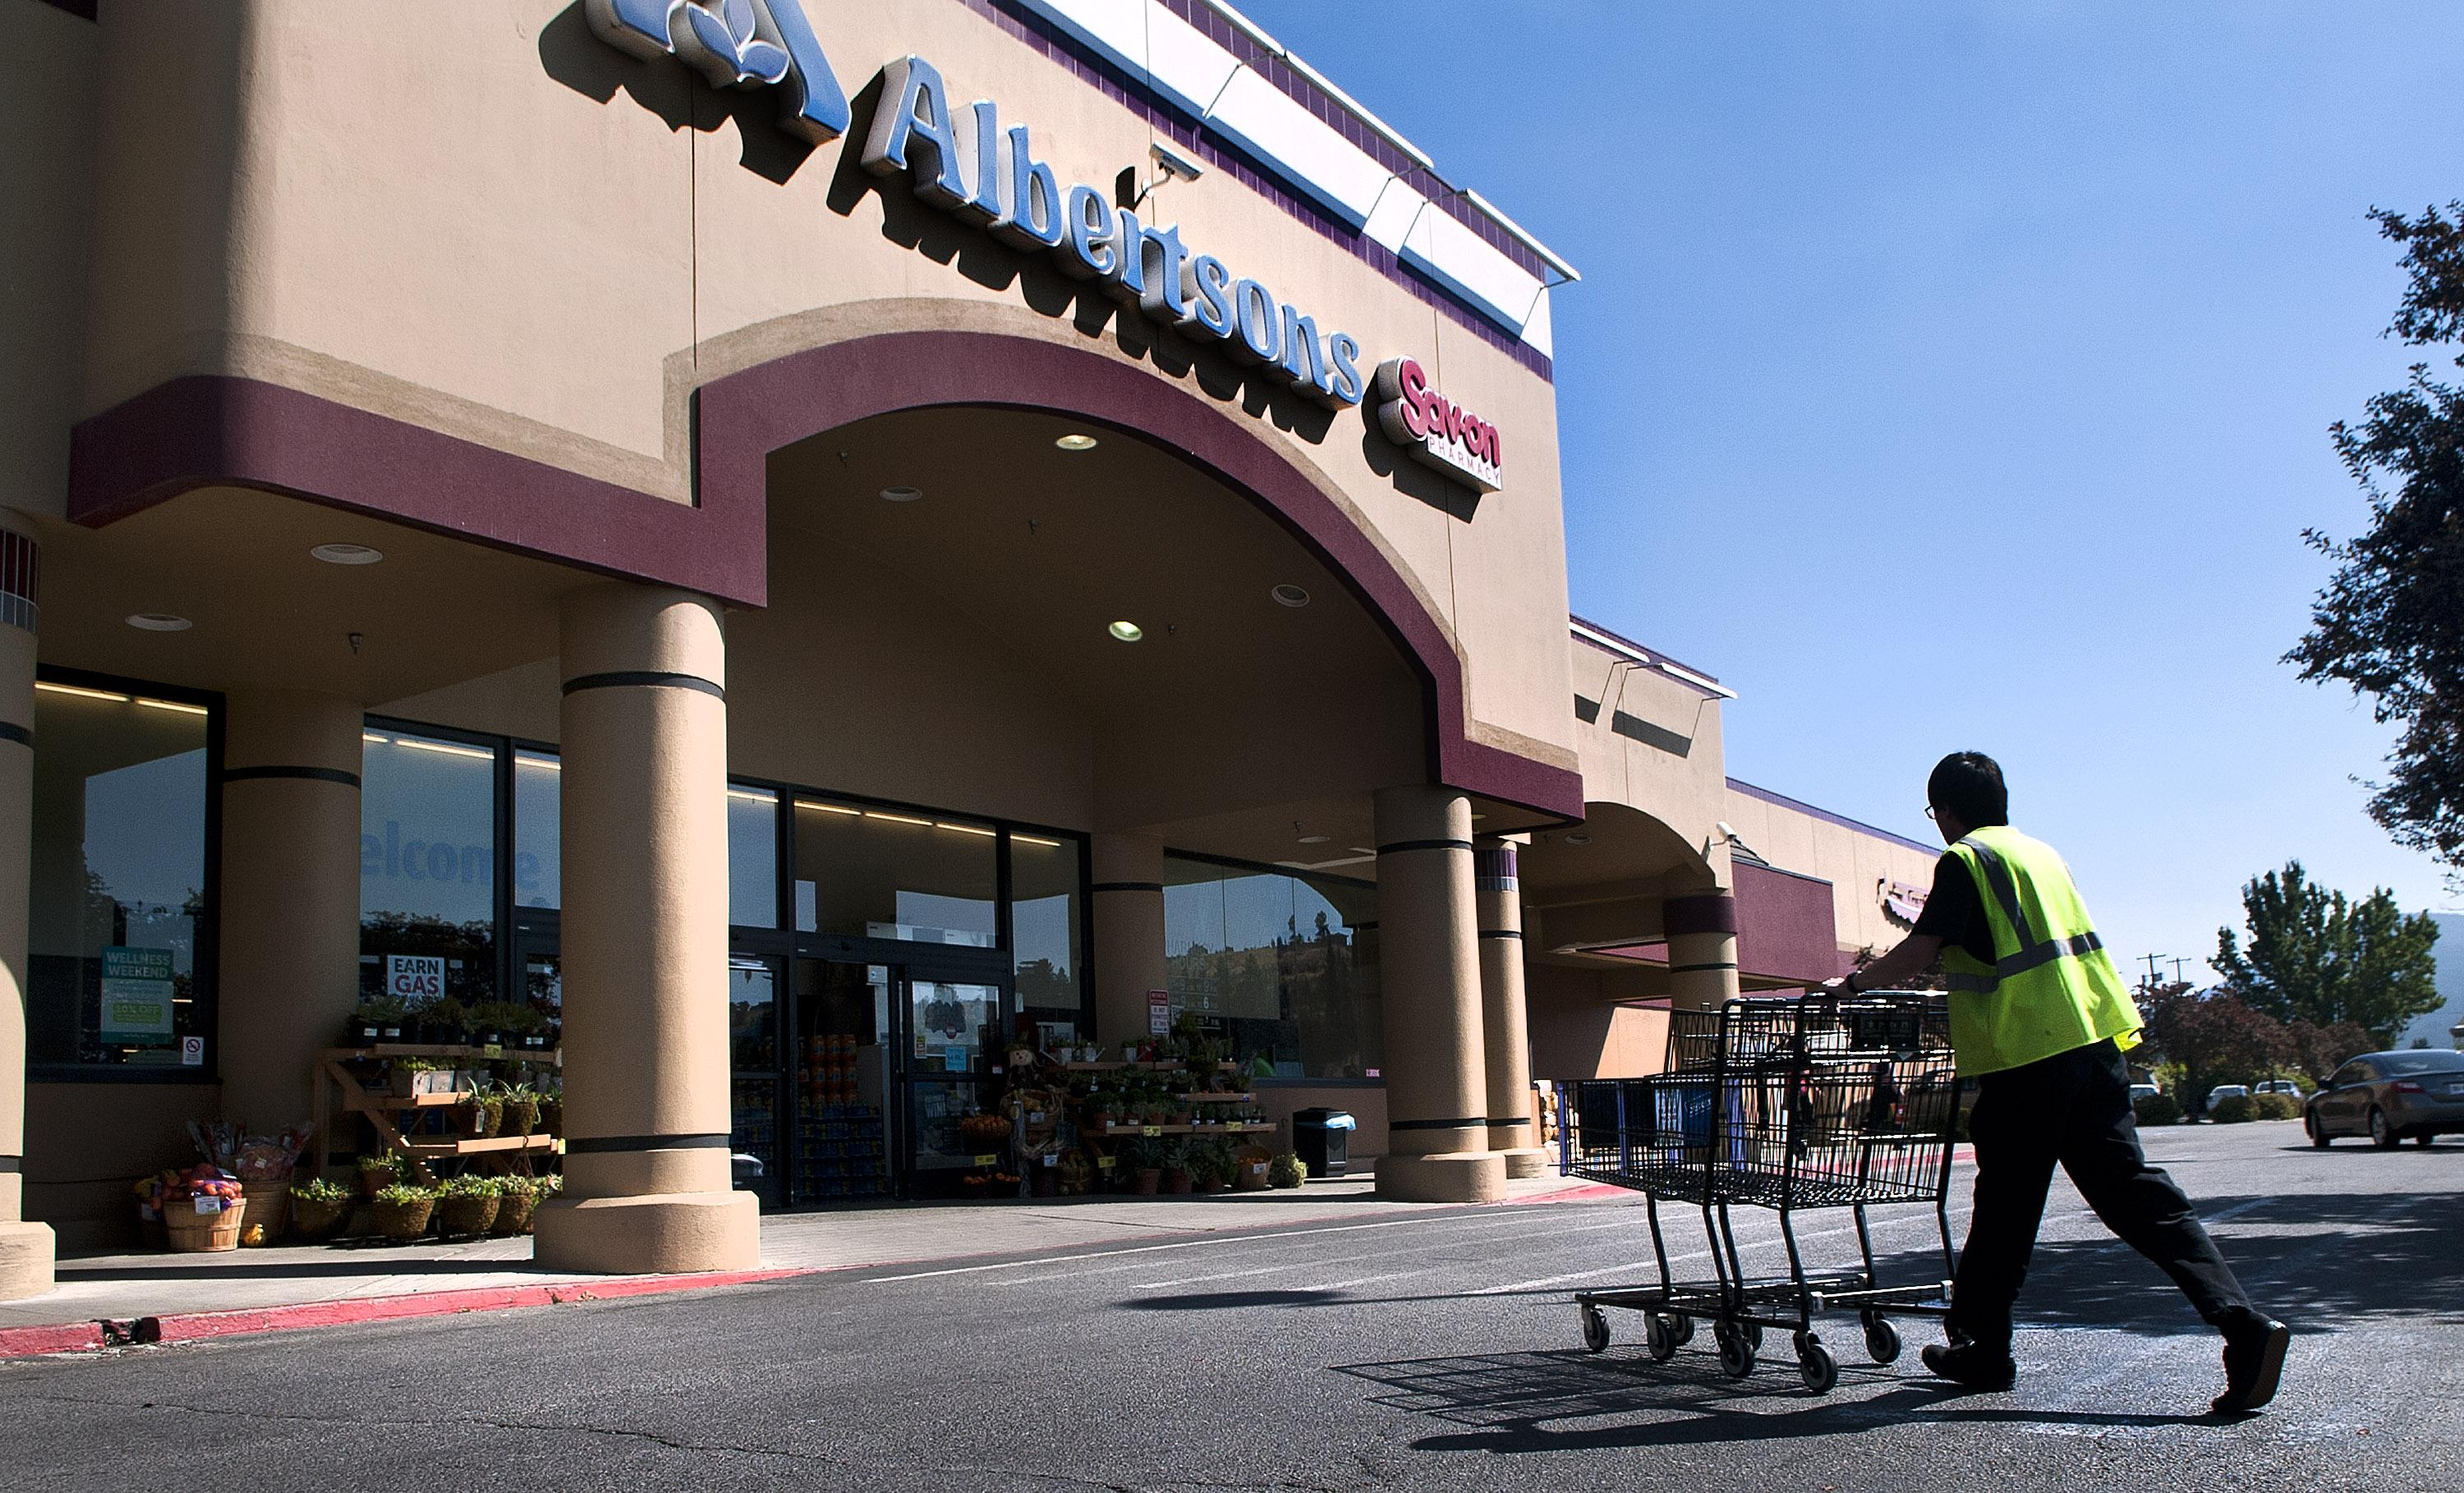 Home delivery service Instacart coming to Coeur d'Alene | The